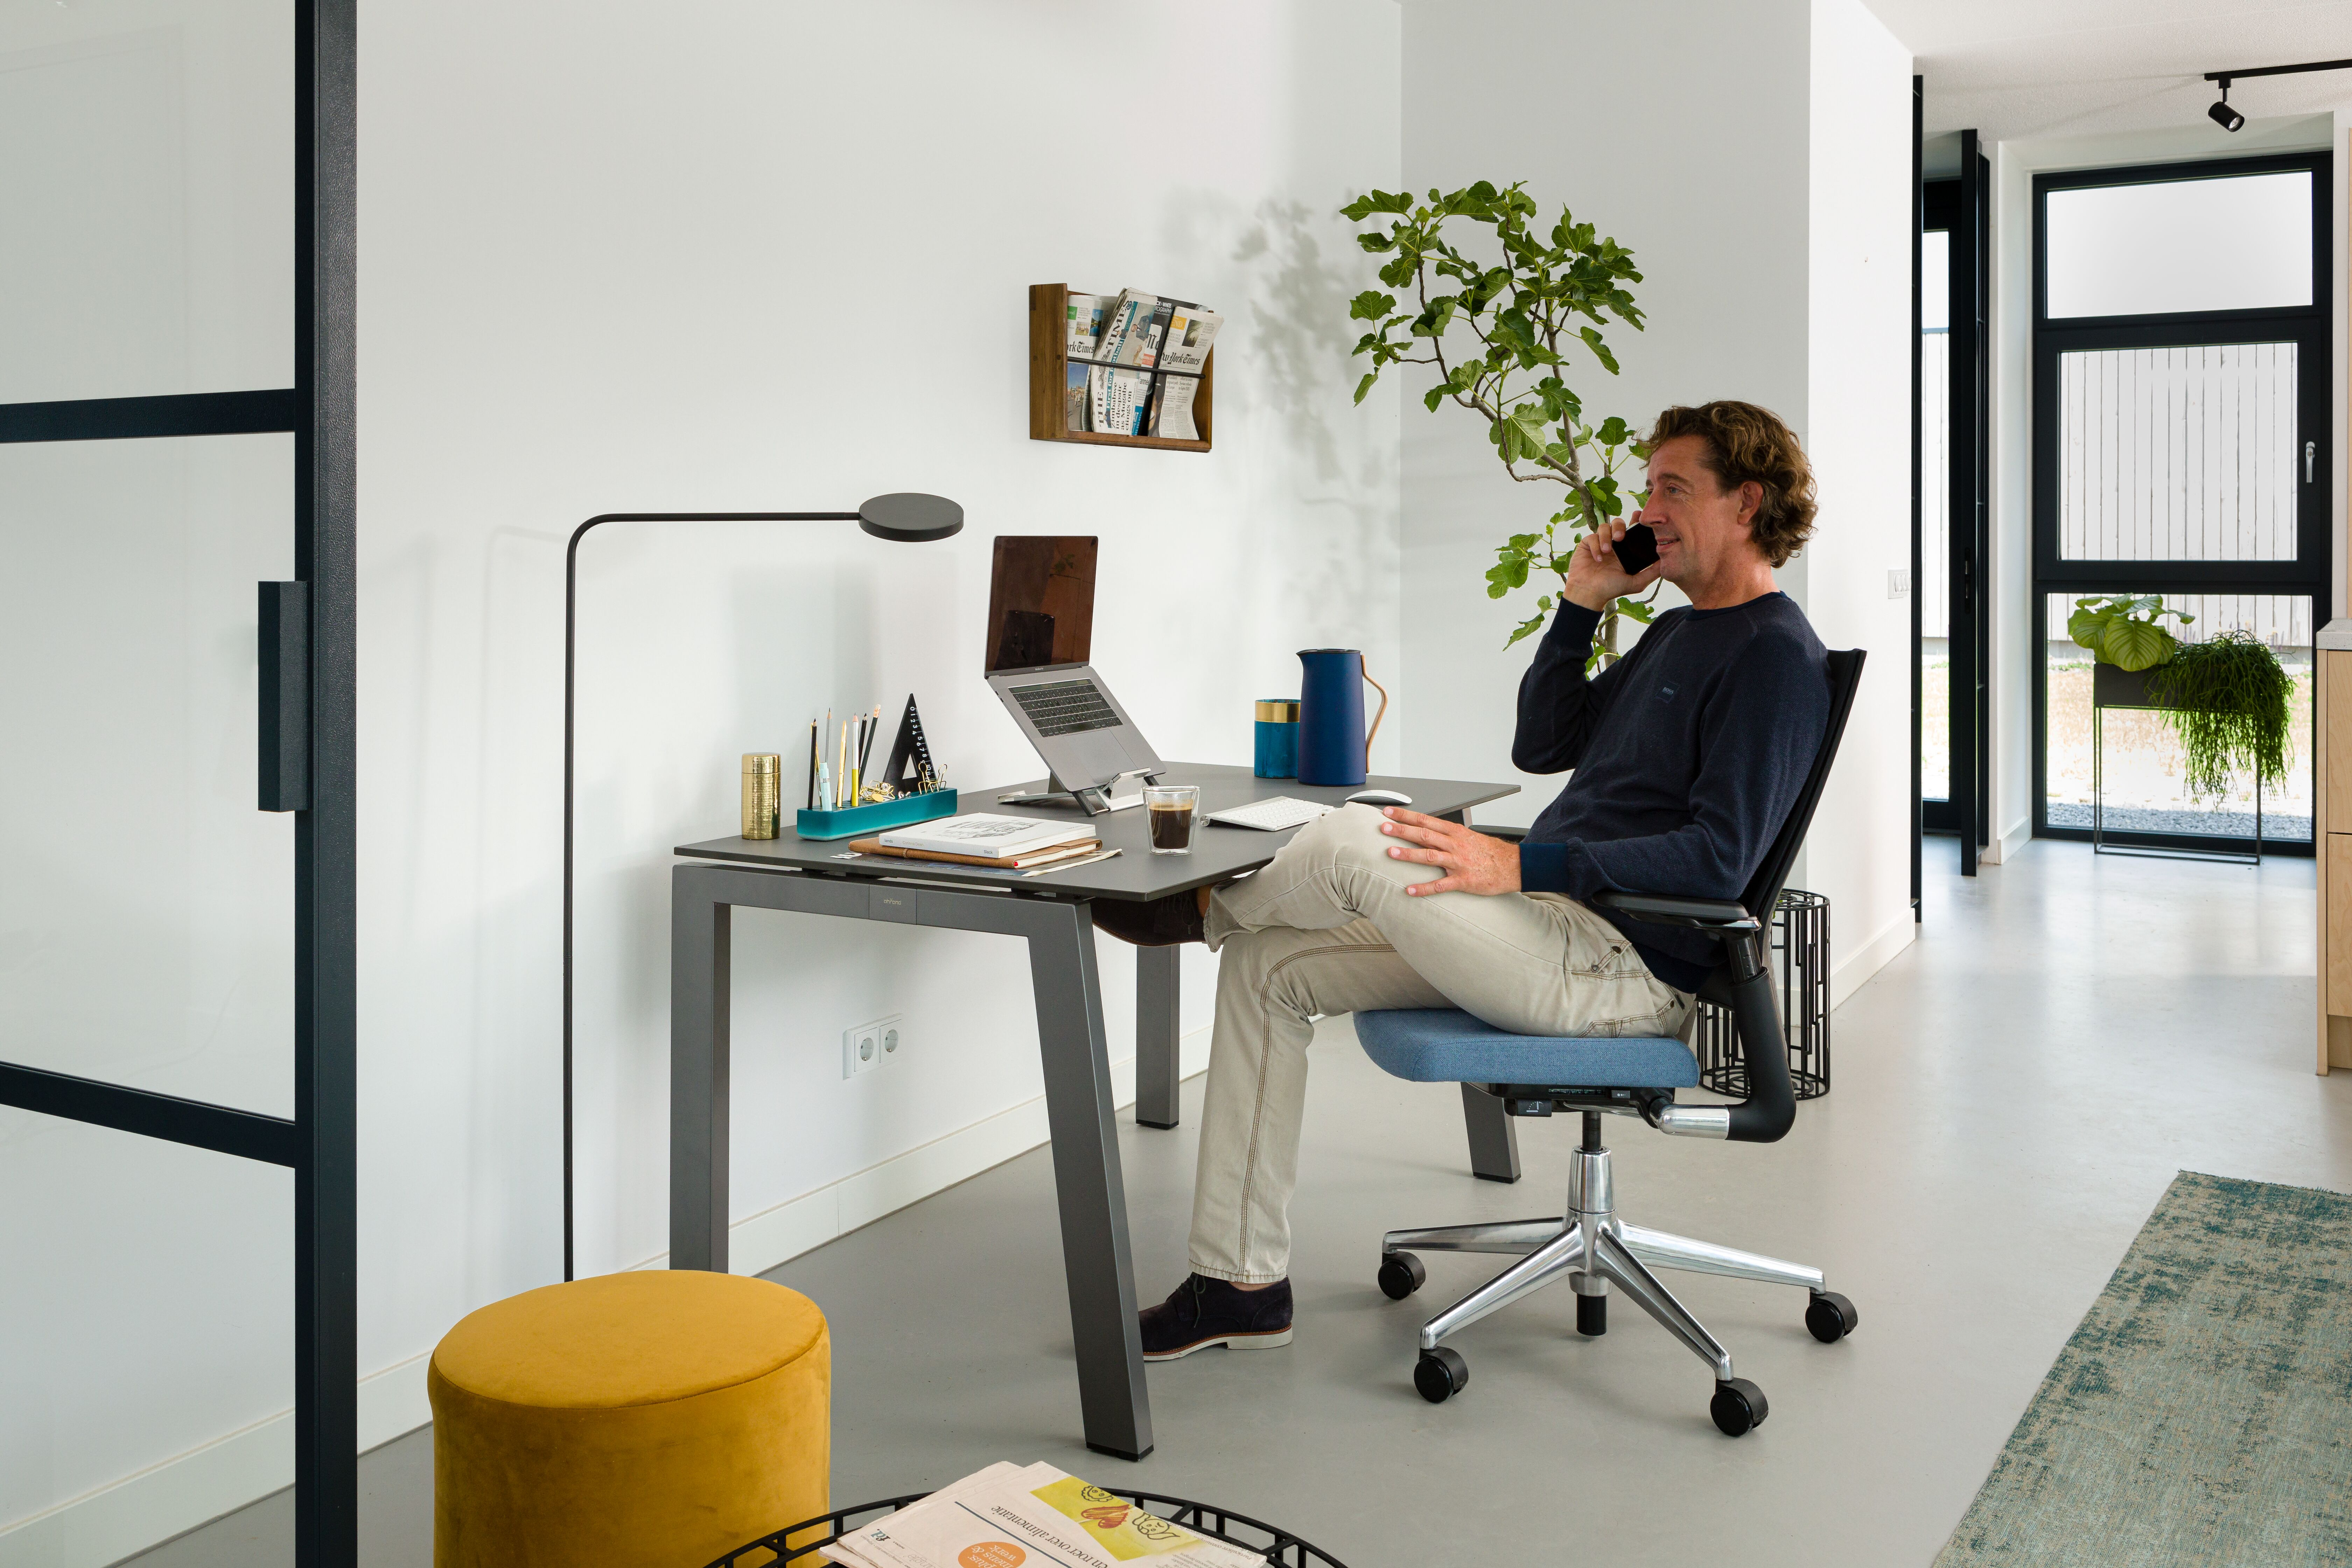 Royal Ahrend balance workstation in grey with charcoal tabletop and 2020 Extra Verta office chair upholstered in blue with male model calling interior view